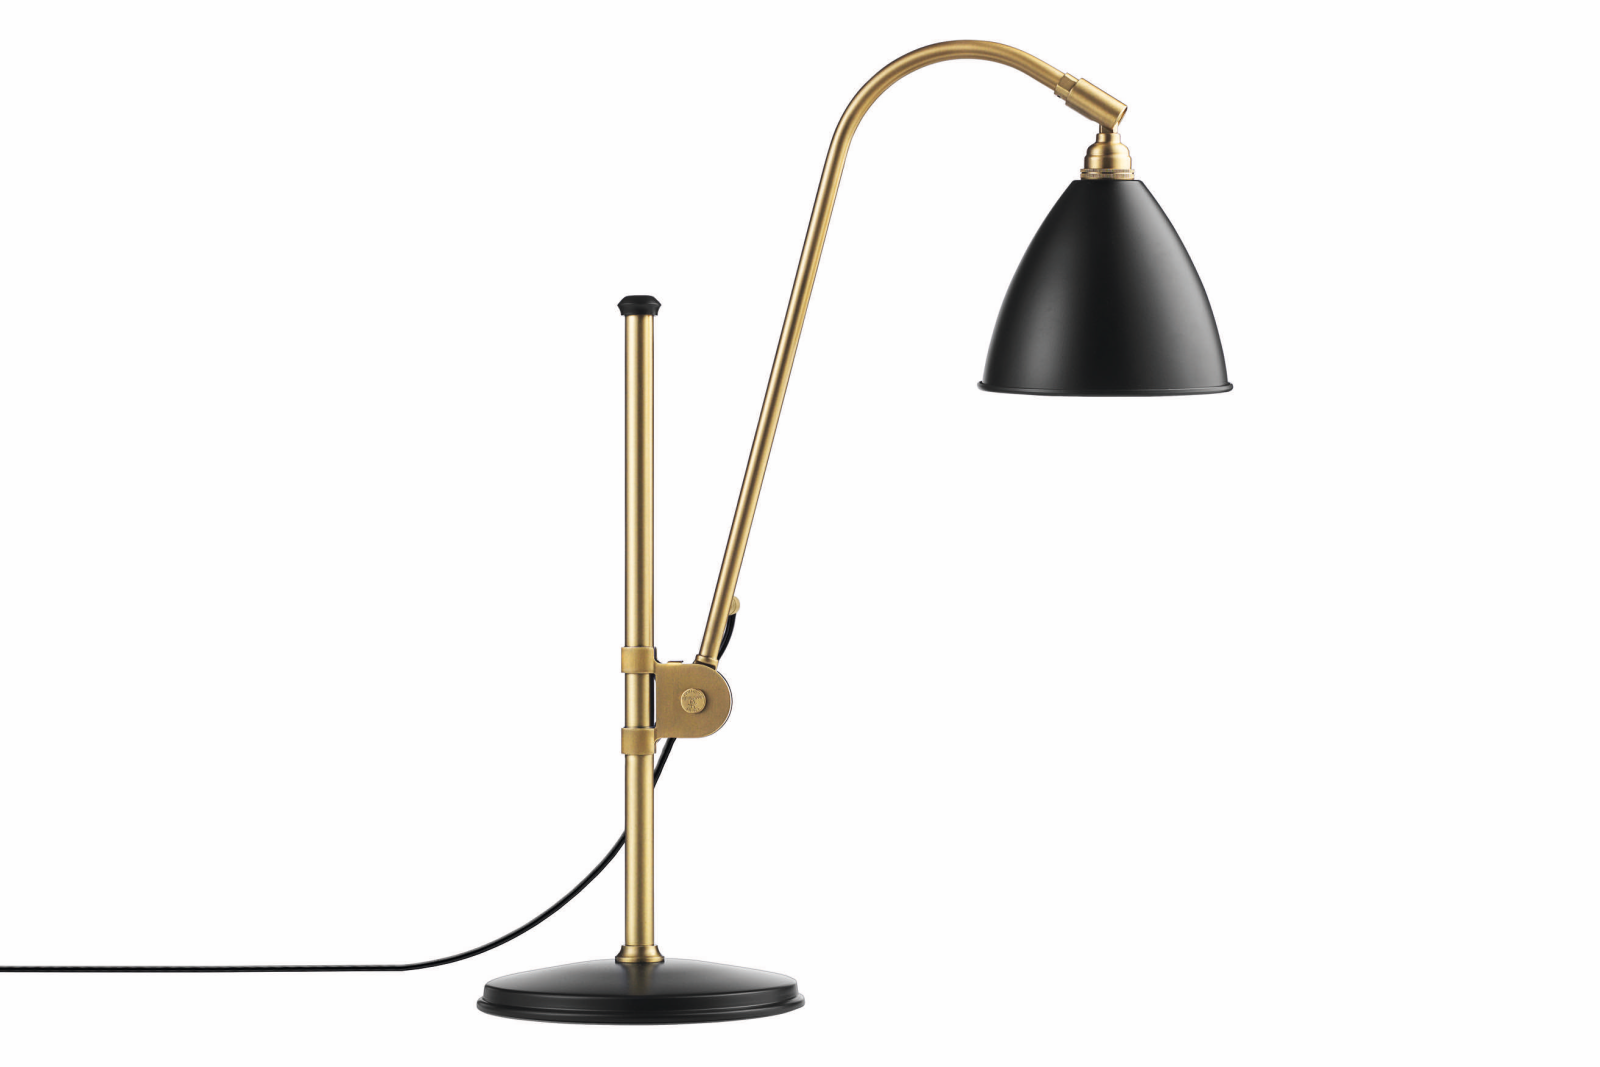 Bestlite BL1 Table Lamp Charcoal Black and Brass